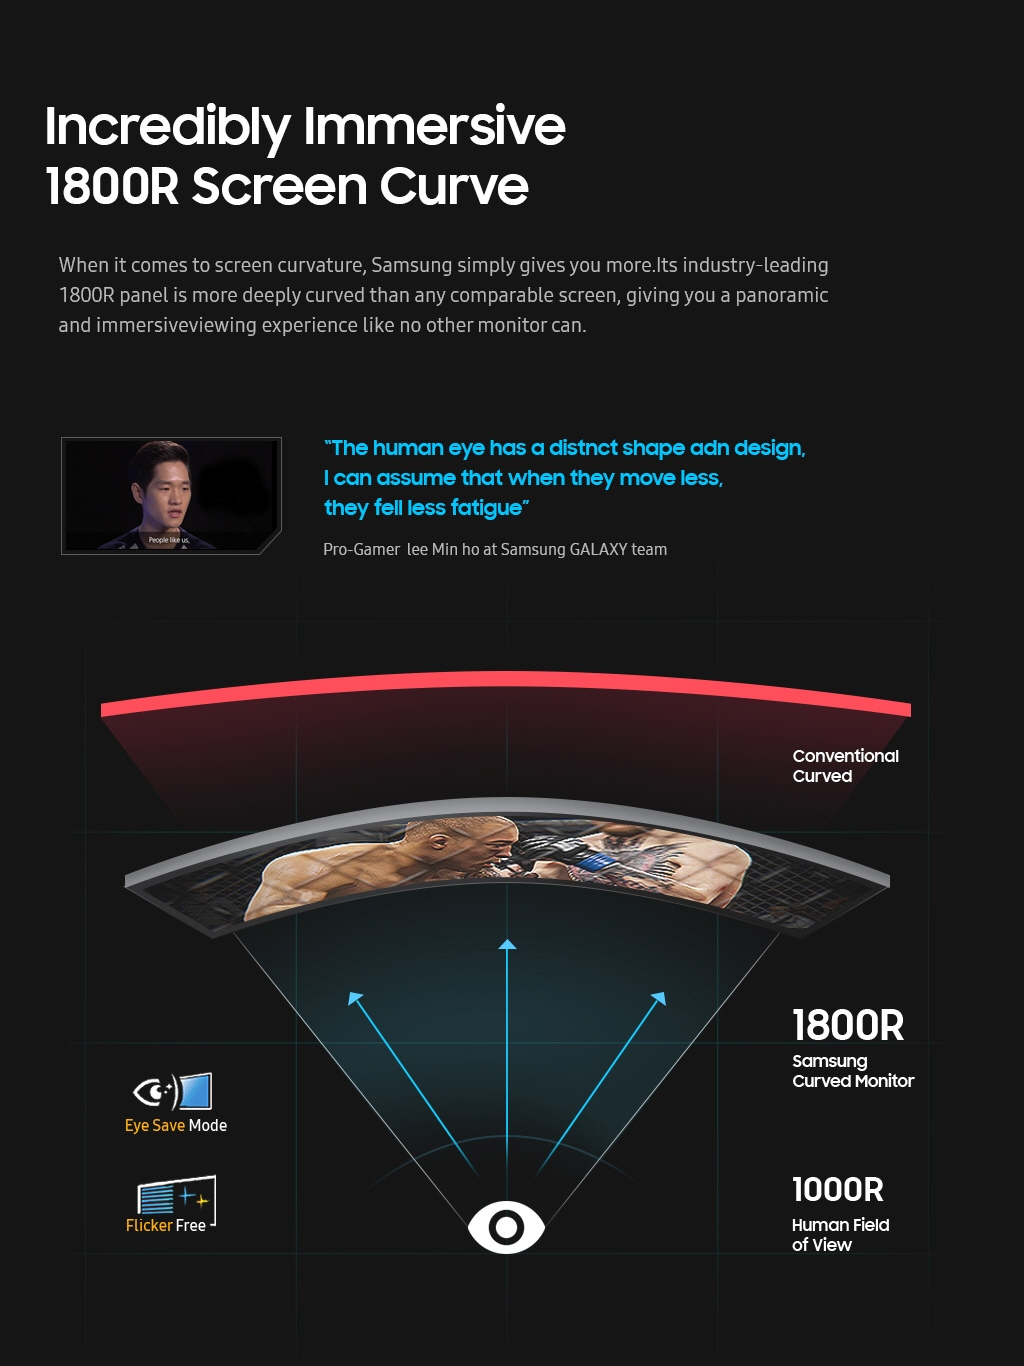 Incredibly immersive 1800R screen curve